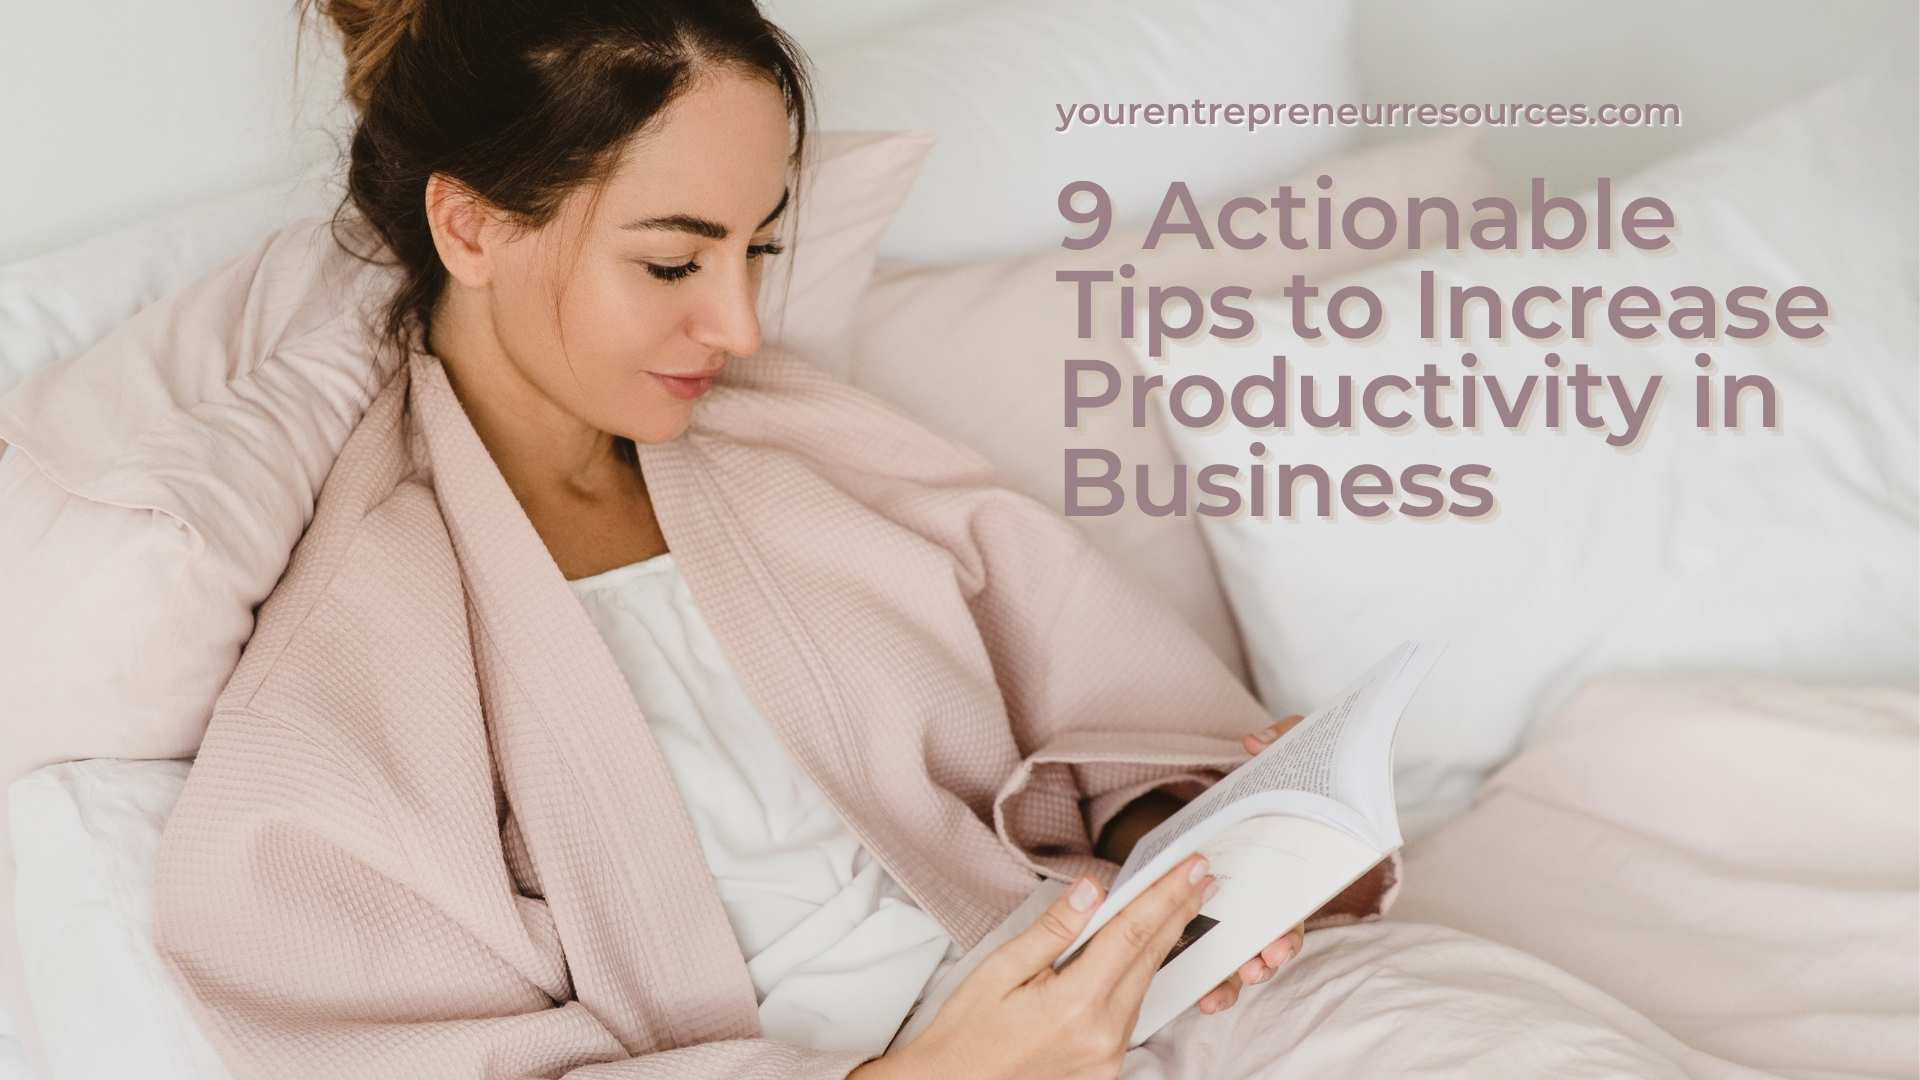 9 Actionable Tips to Increase Productivity in Business for Entrepreneurs